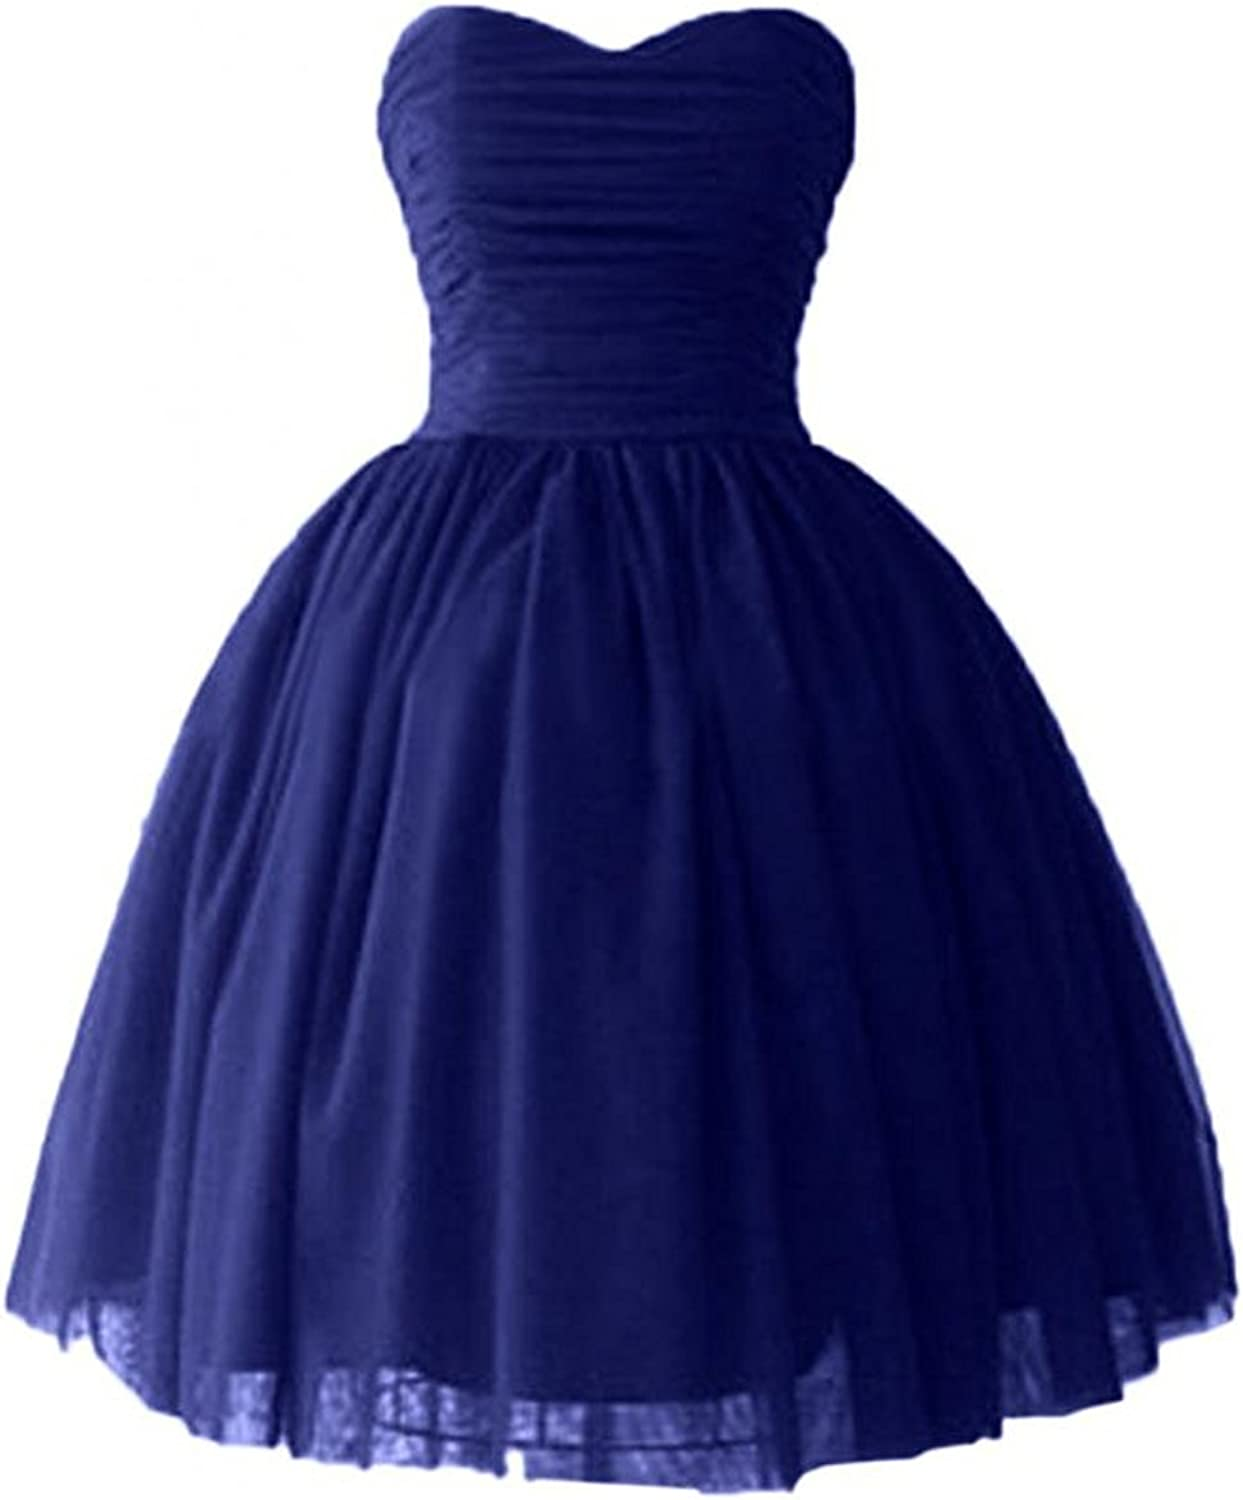 Victoria Prom Women's Cocktail Dress Satin Tulle Homecoming Party Dress Wsk07